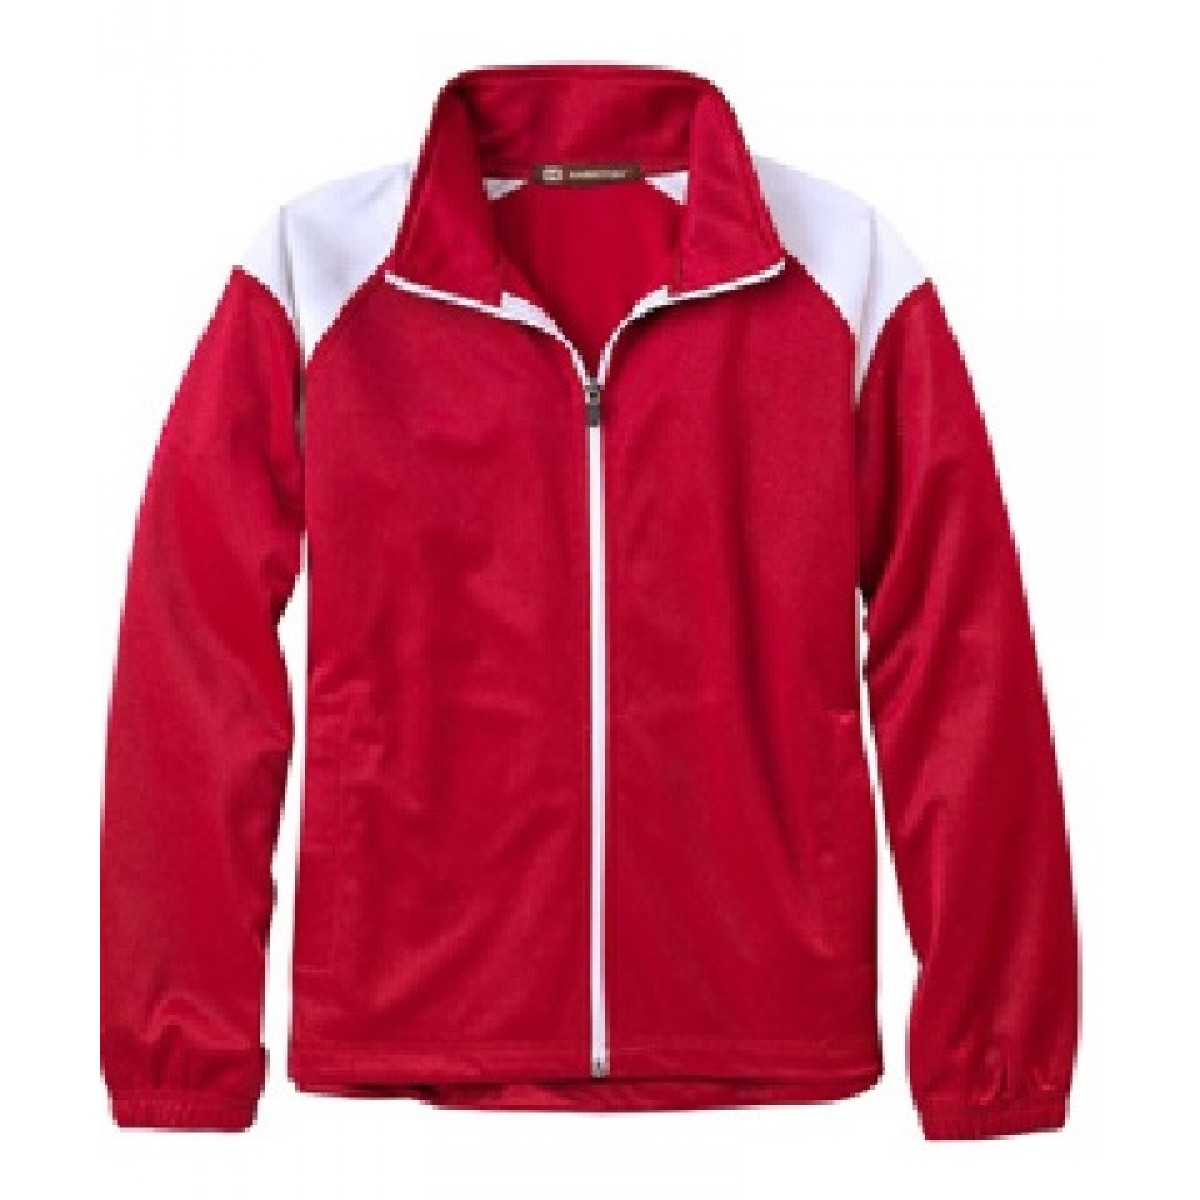 Embroidered Red Tricot Track Jacket-Red-M